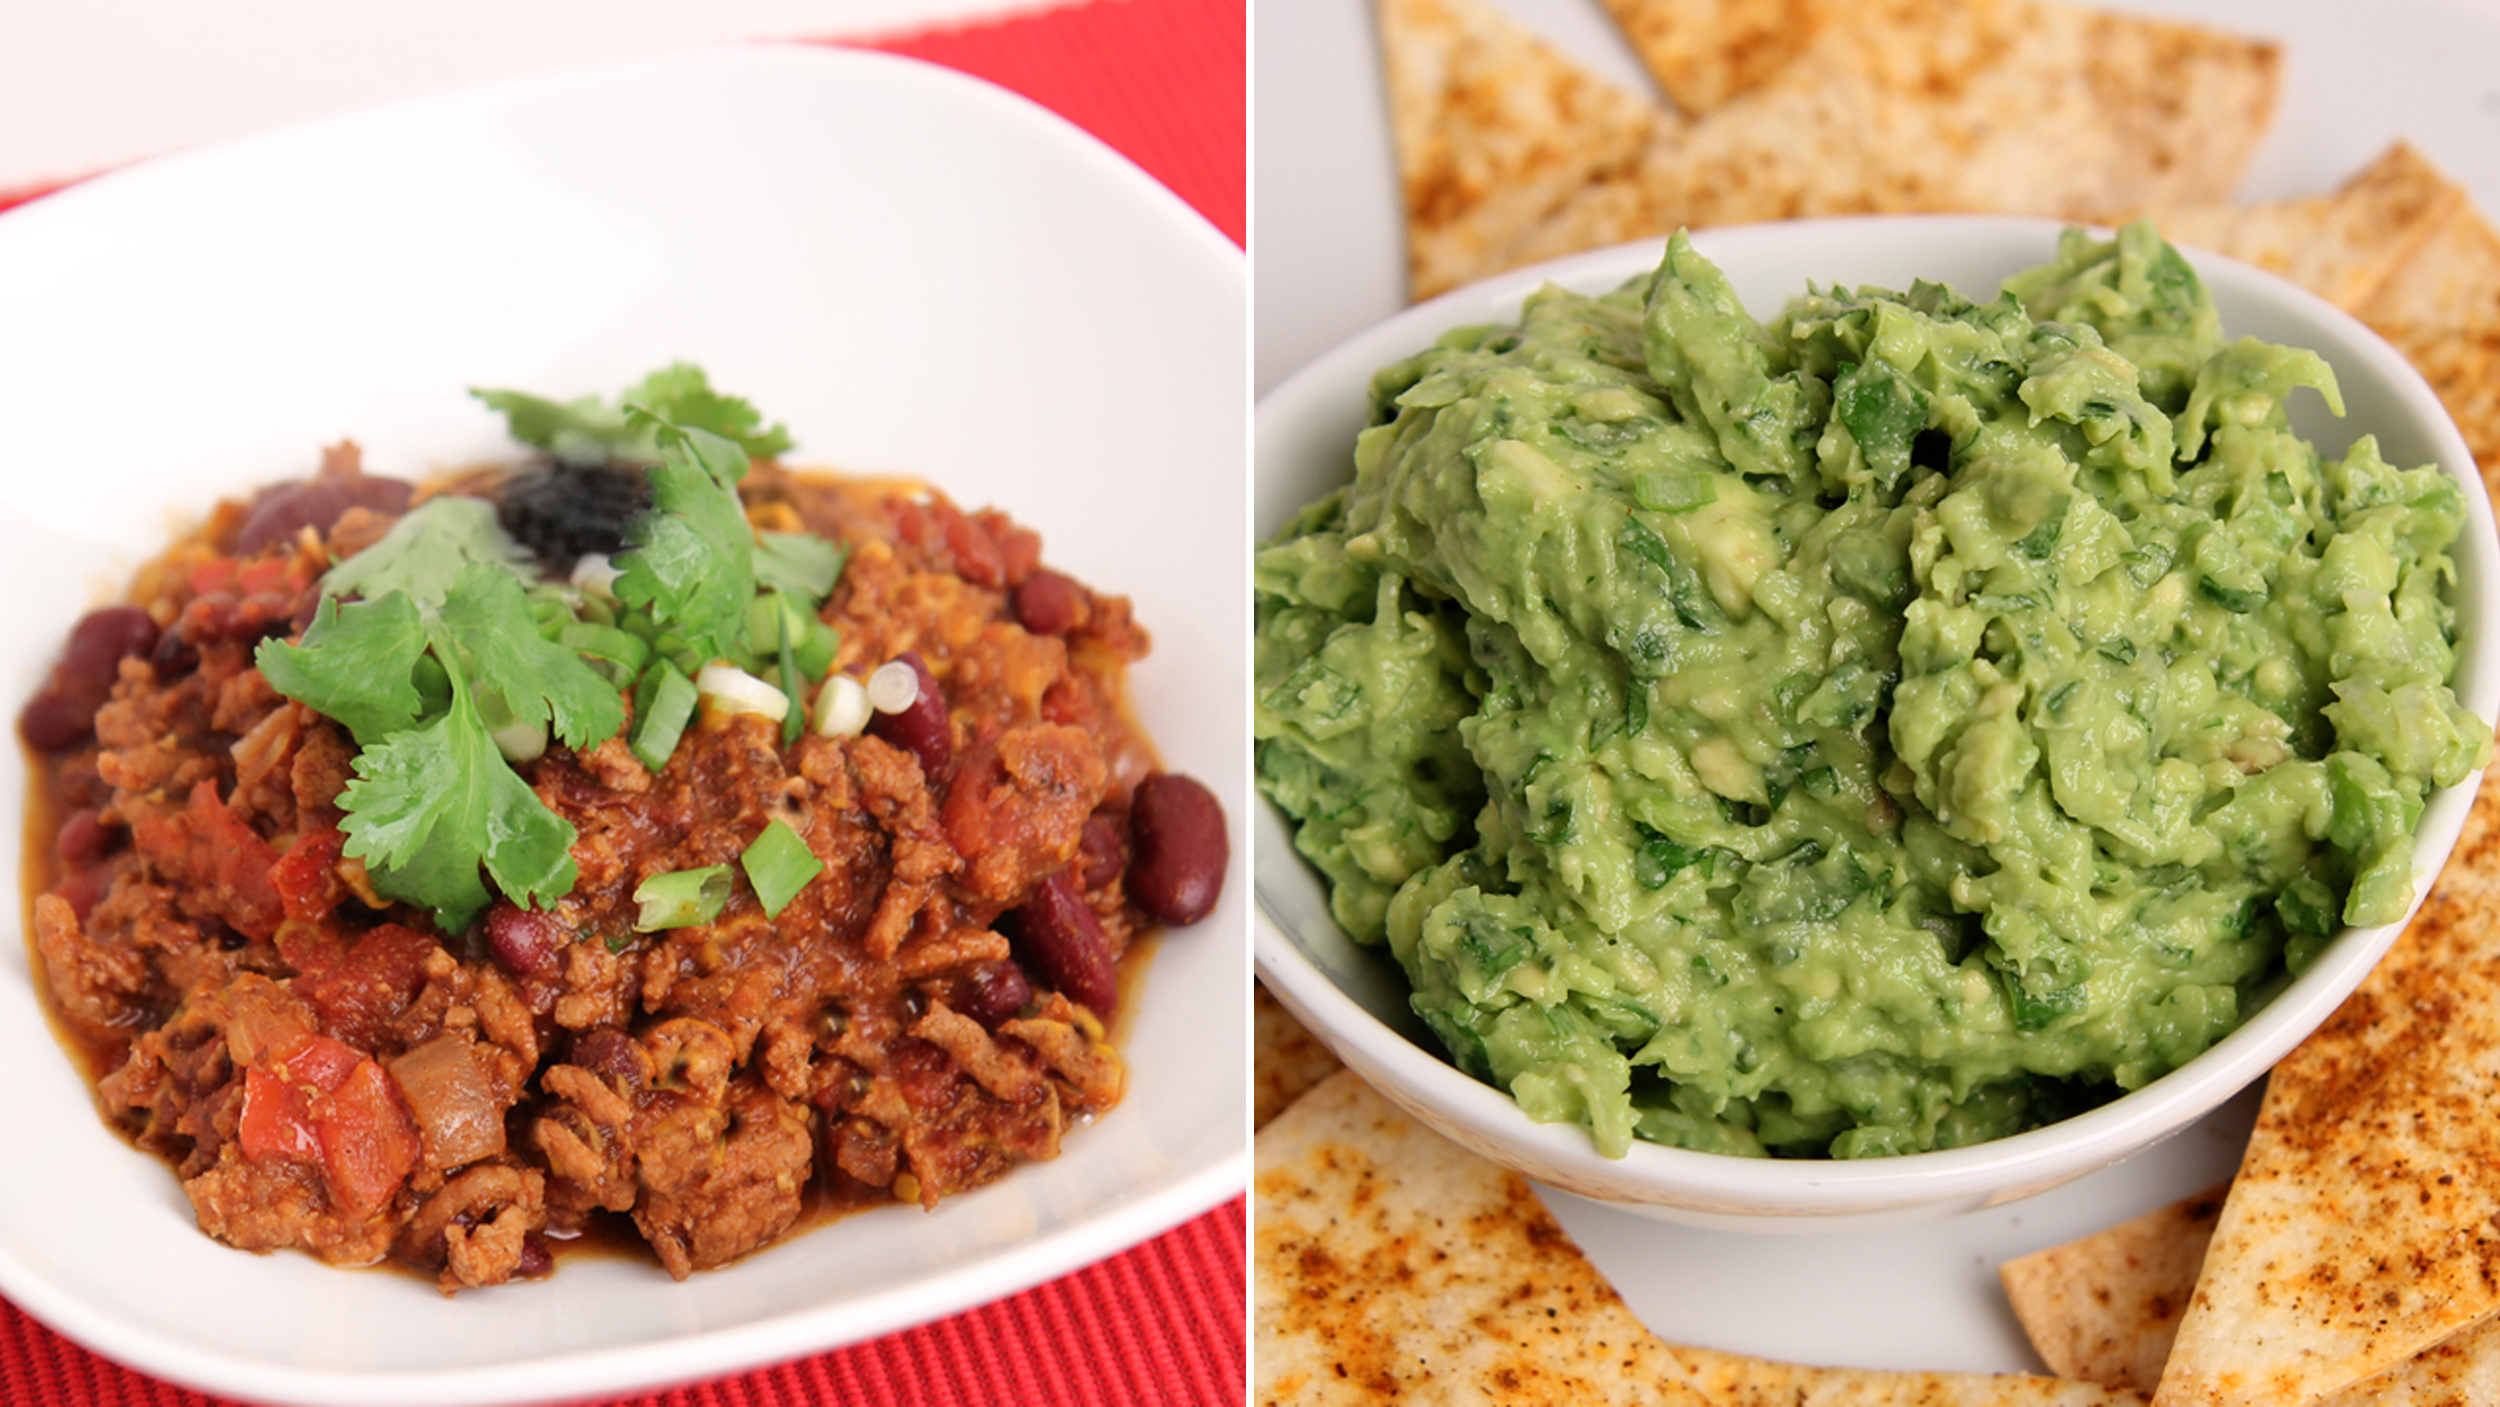 Dig in and enjoy this one-pot Super Bowl chili and guacamole